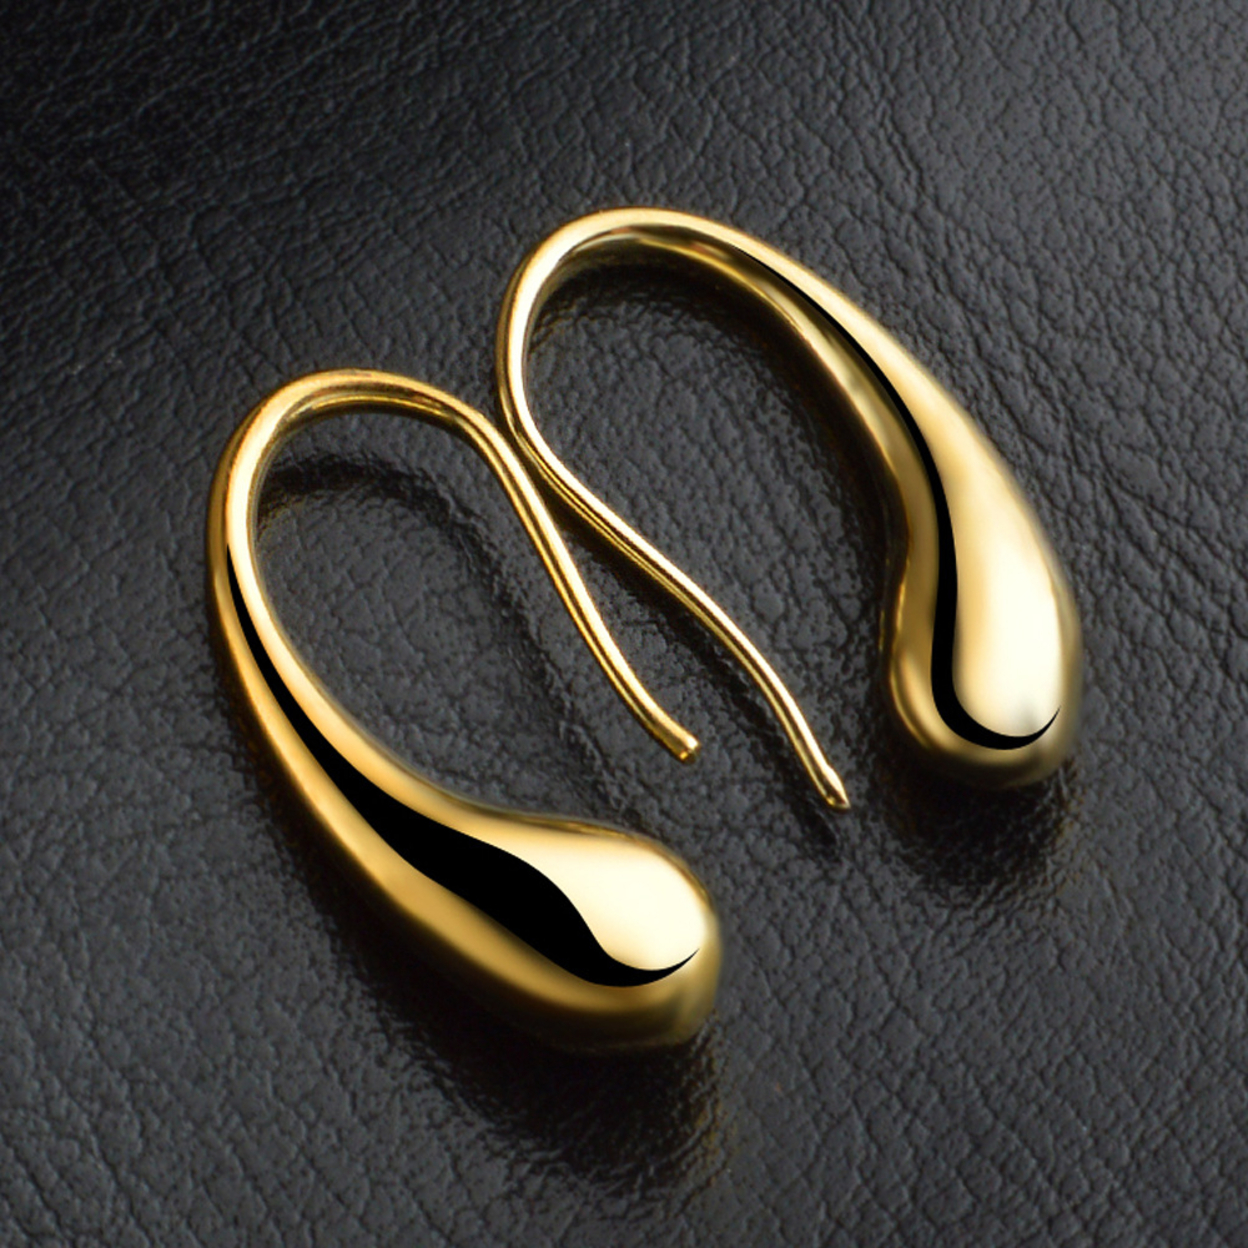 Charmer Hook Earrings In Gold And Silver Tone